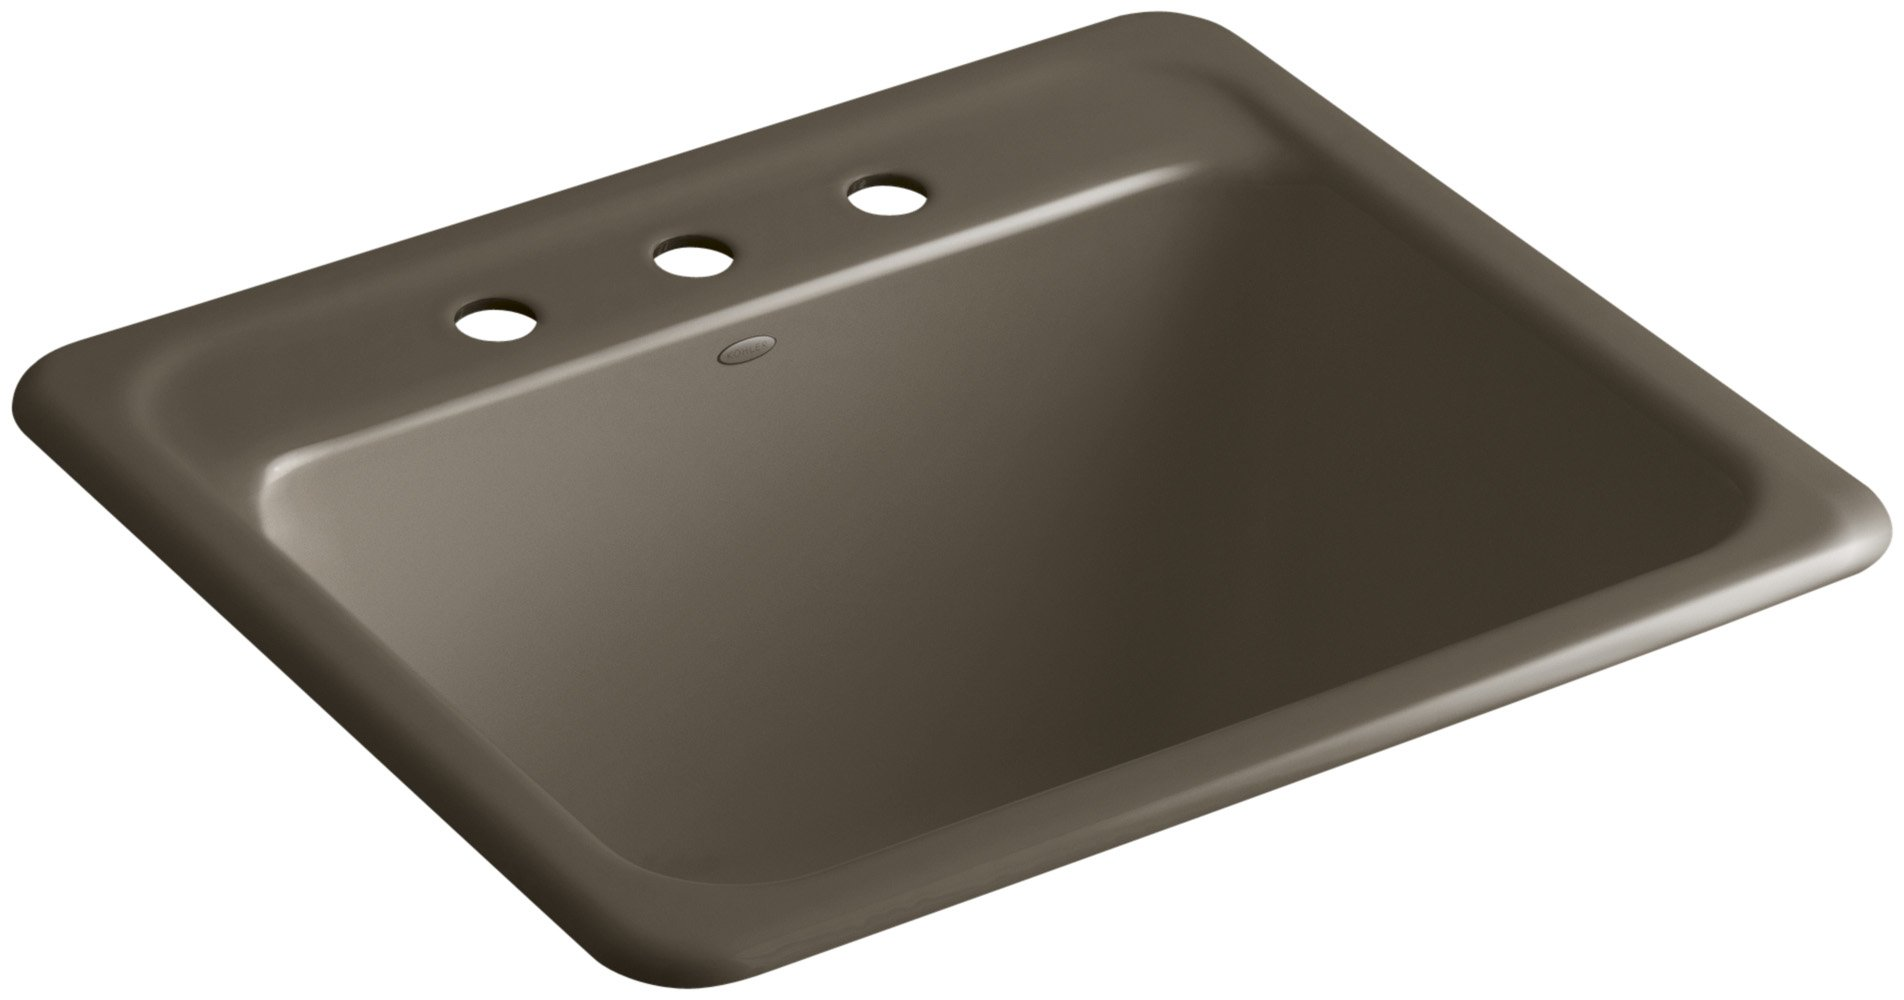 Glen Falls Top-Mount/Undermount Utility Sink with Three Faucet Holes, Suede by Kohler